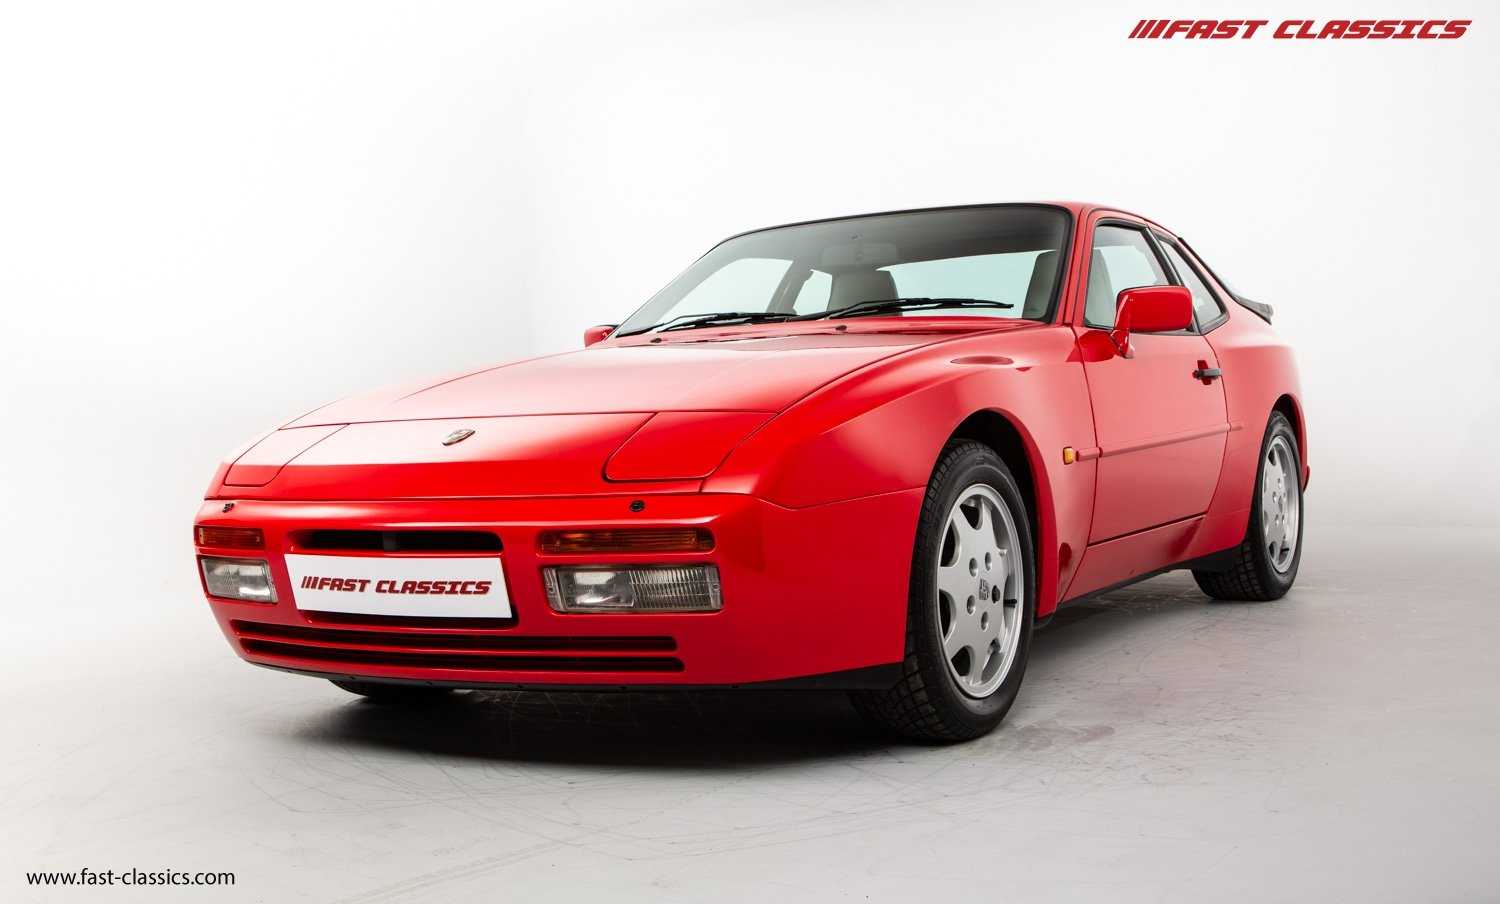 1990 PORSCHE 944 S2 // STUNNING GUARDS RED // 27K MILES // FAMILY For Sale (picture 6 of 23)